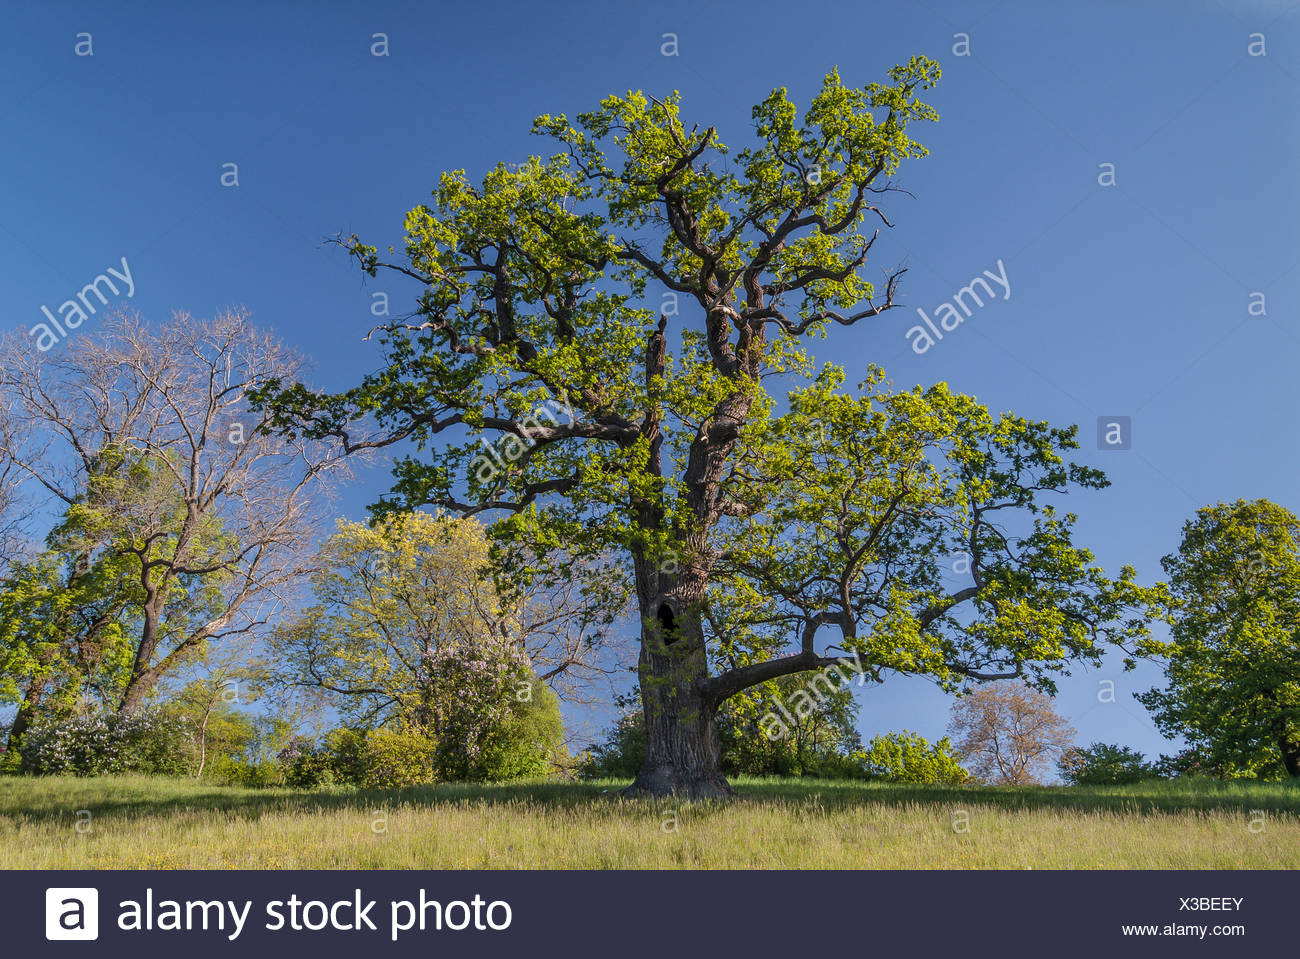 Old Pedunculate Oak tree (Quercus robur) in the landscaped park of Schloss Ettersburg Castle, Weimar, Thuringia, Germany - Stock Image